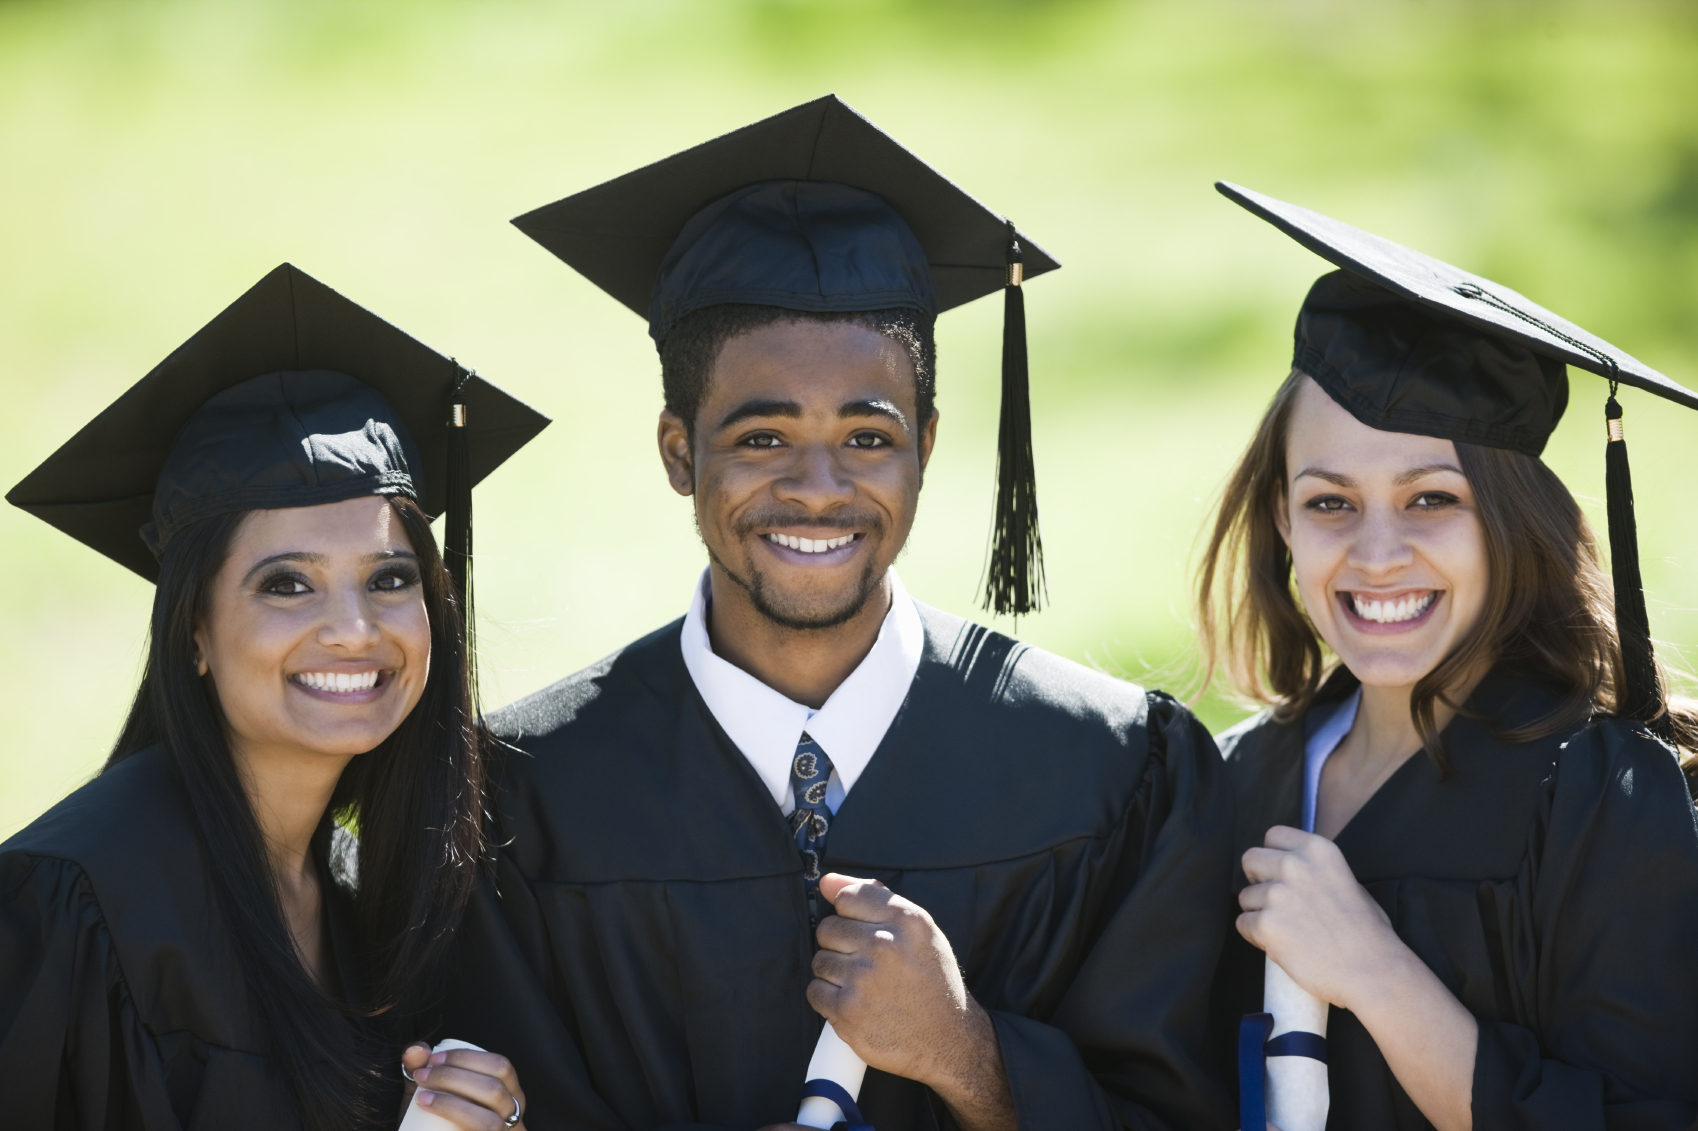 Three high school graduates wearing black gowns and mortar boards, smiling